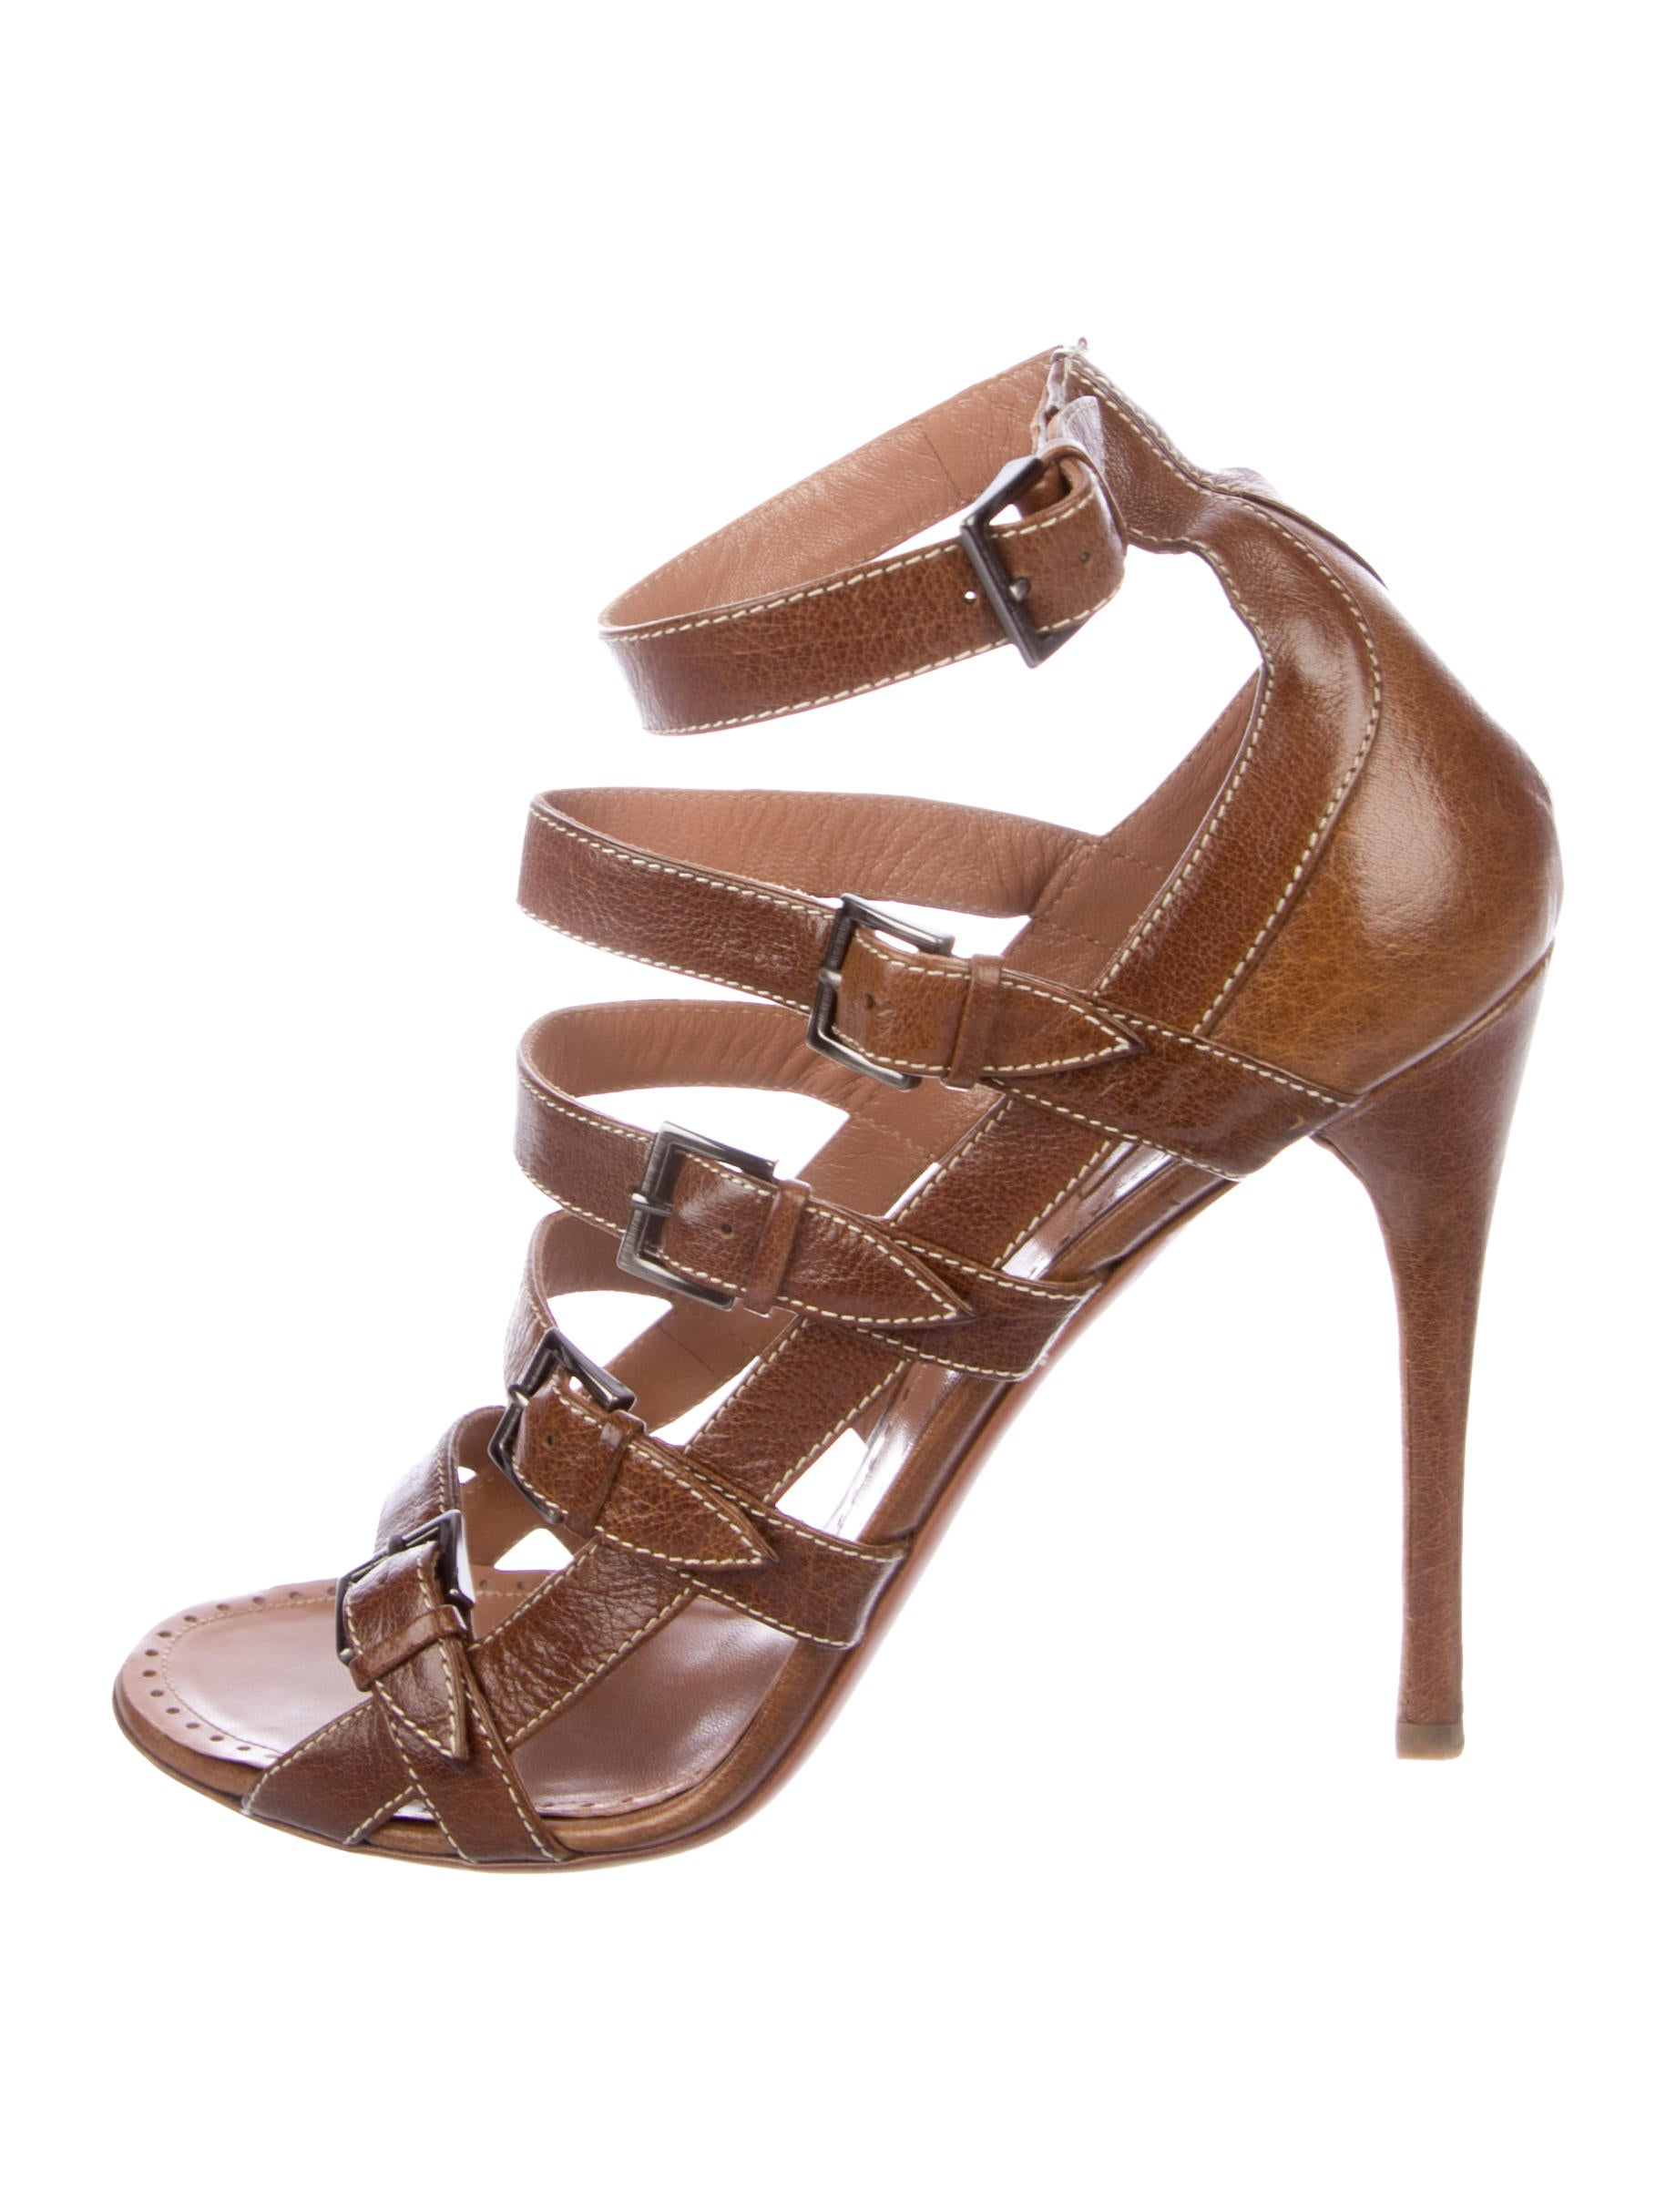 discount good selling Alaïa Leather Multistrap Sandals countdown package online 04L3h